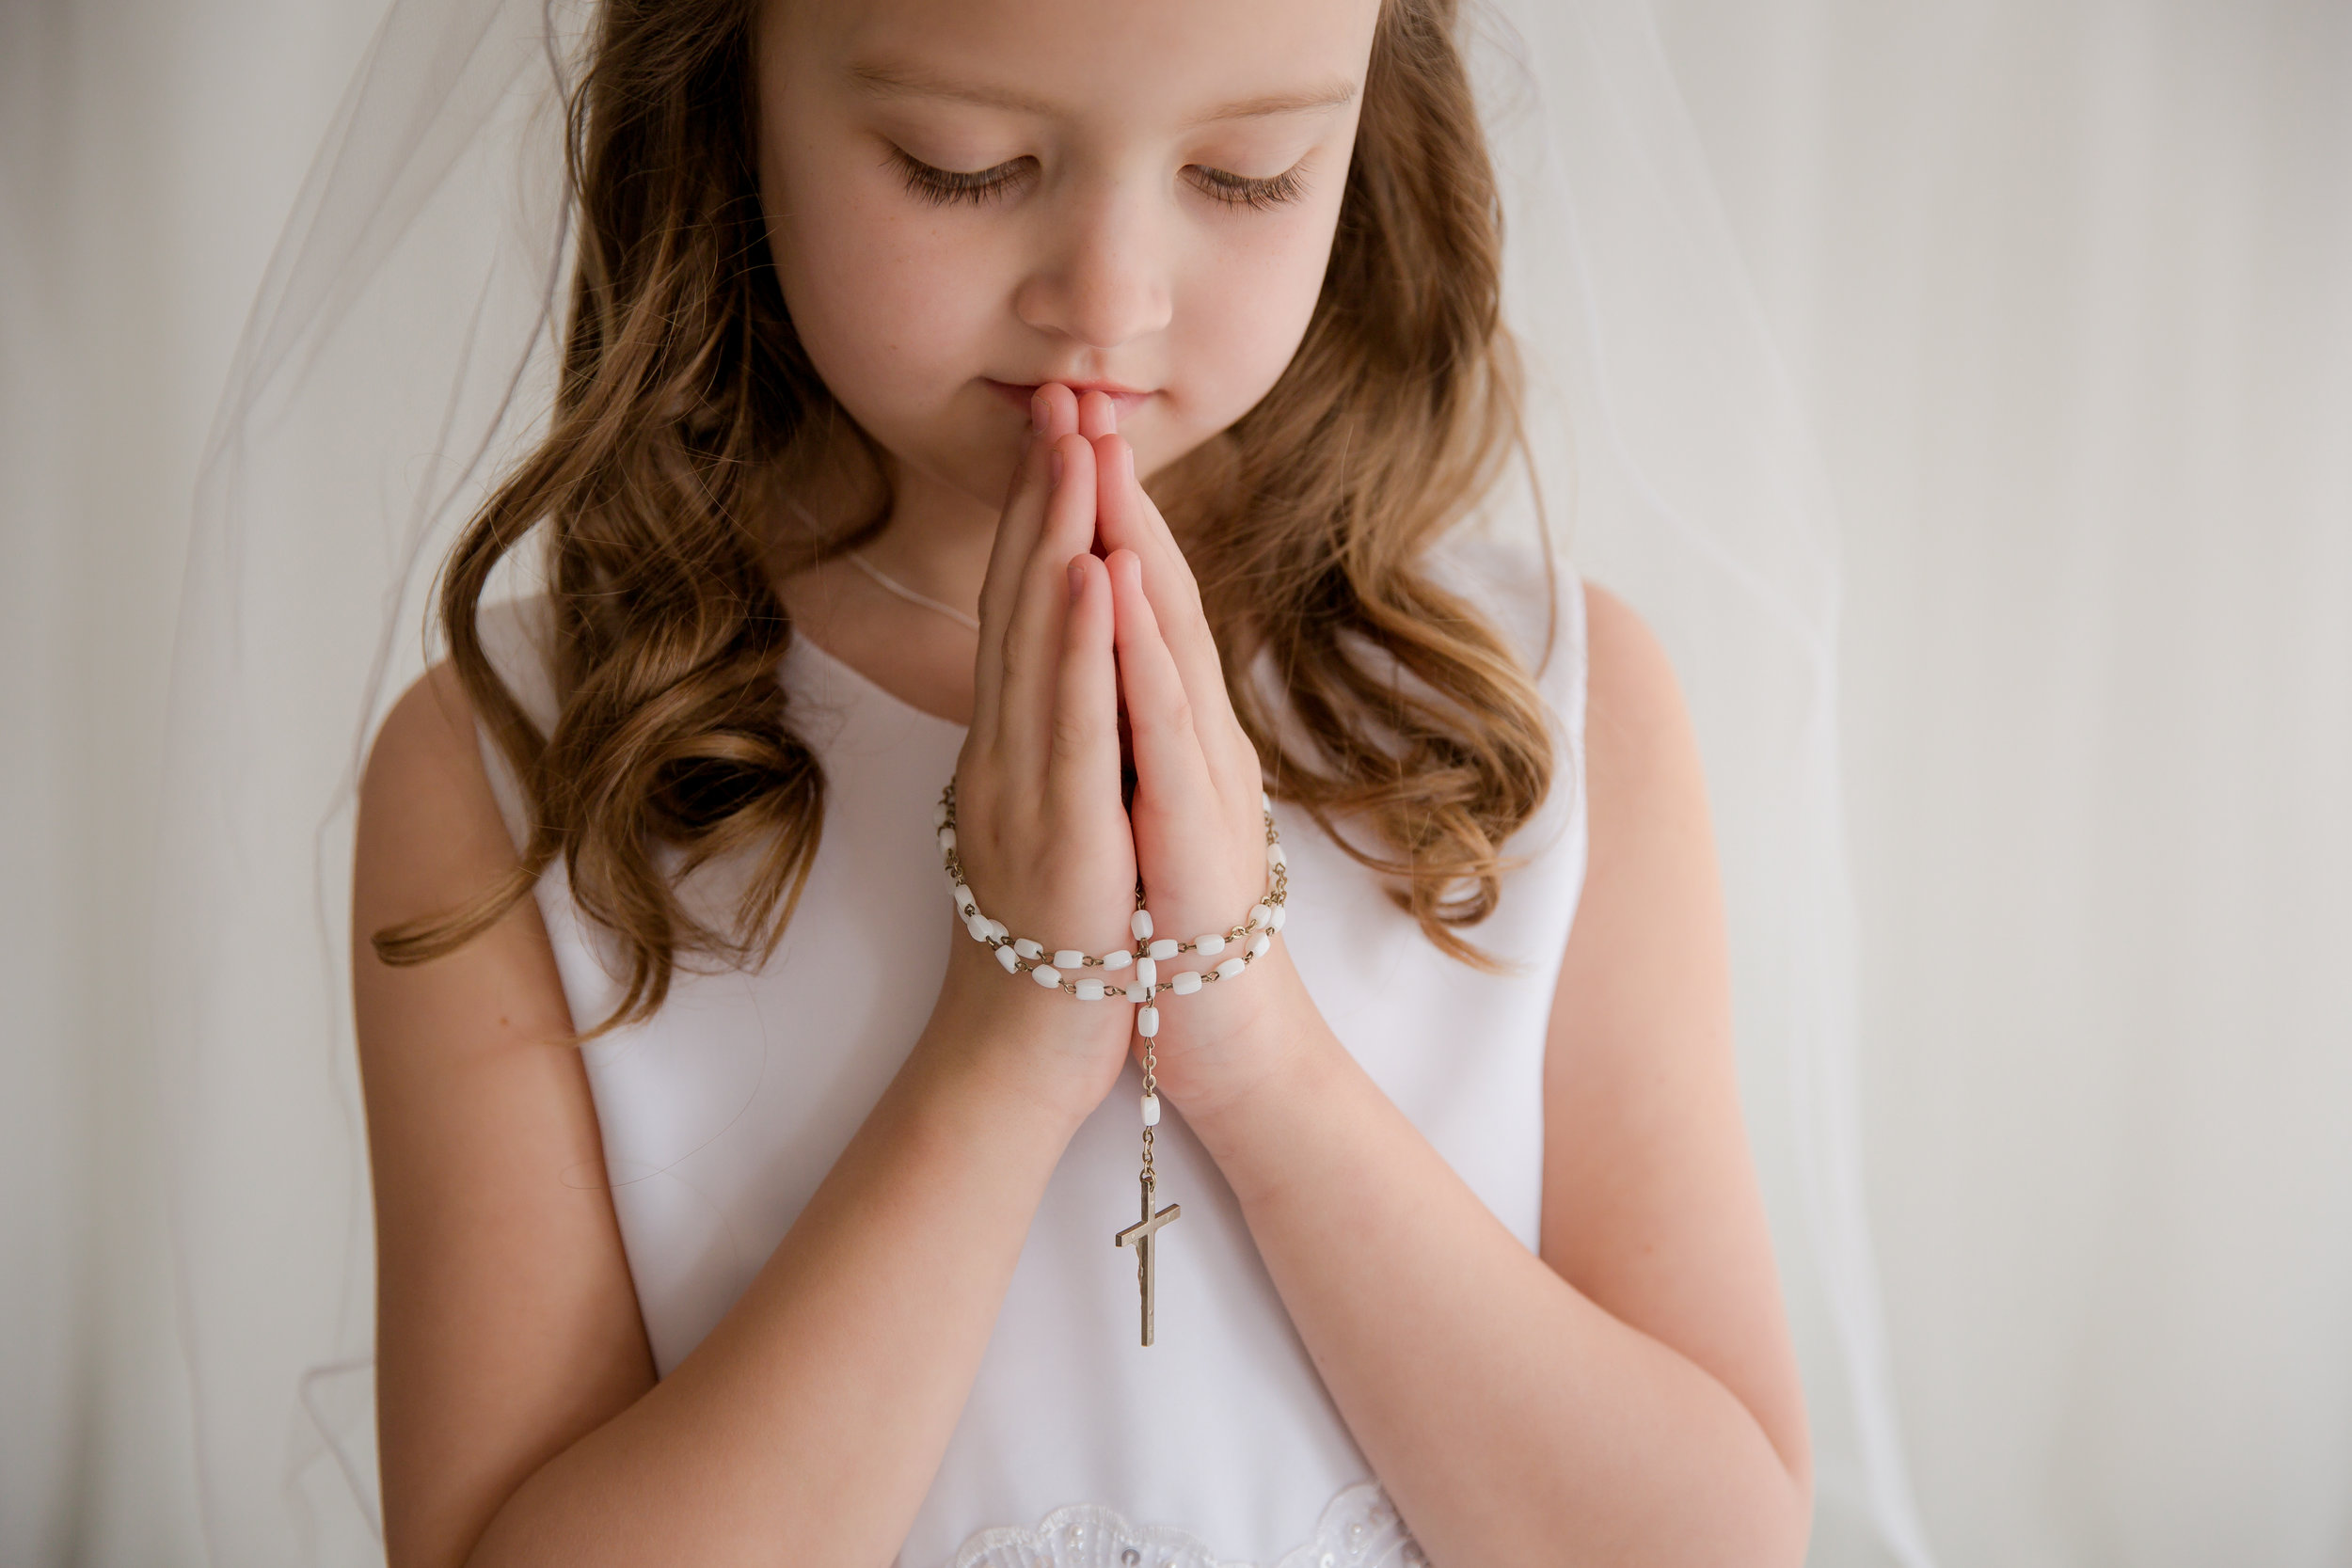 first holy communion girl wearing a white dress and a rosary praying